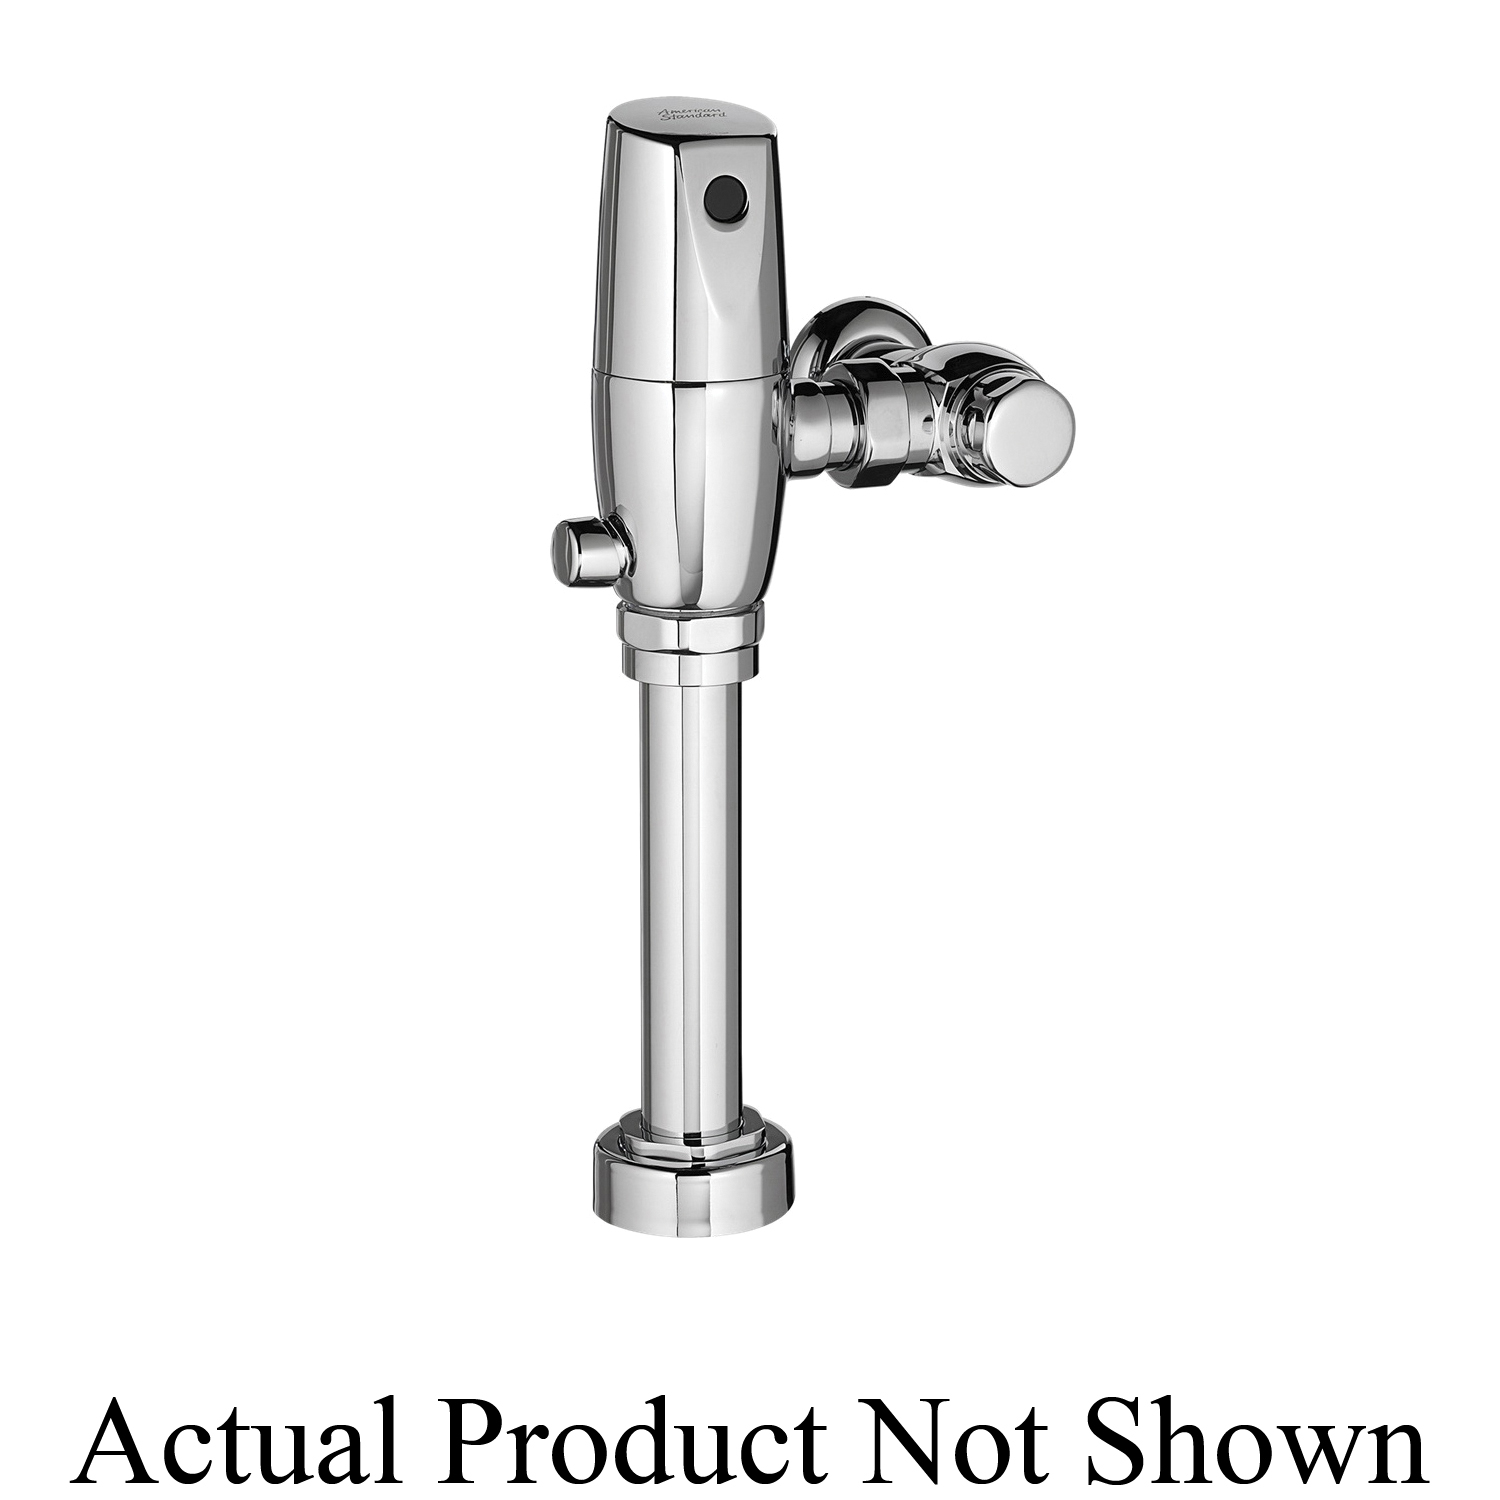 American Standard 6065161.002 Selectronic® Exposed Toilet Flush Valve, CR-P2 Lithium Battery, 1.6 gpf, 1 in Inlet, 1-1/2 in Spud, 25 to 80 psi, Polished Chrome, Import